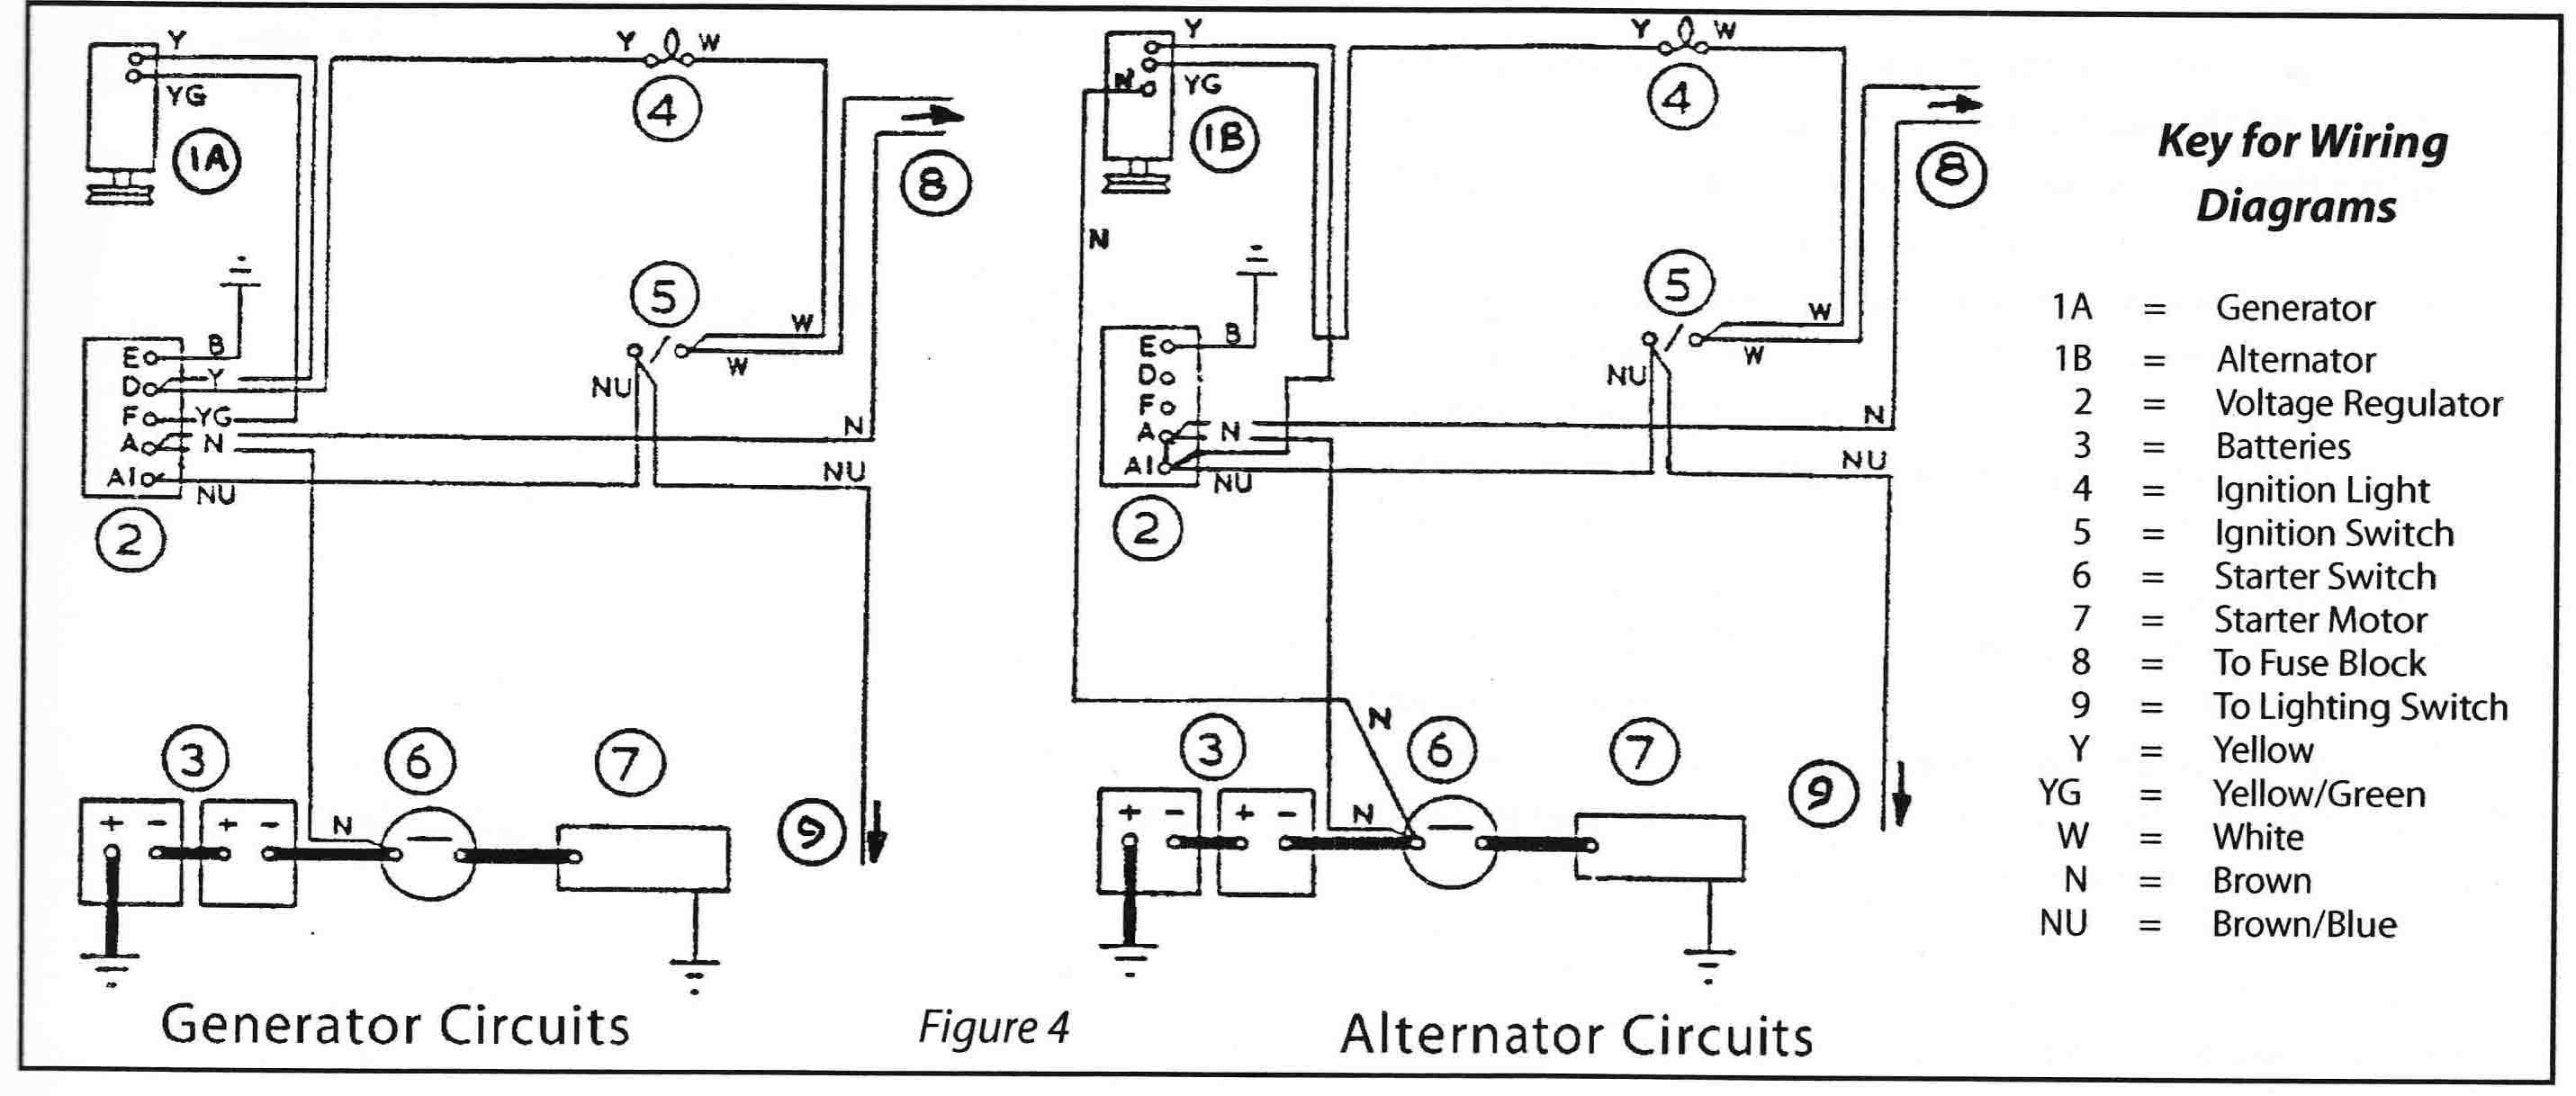 mgb alternator wiring diagram mgb wiring diagrams online mgb wiring diagram 1979 images 1979 mgb roadster likewise triumph